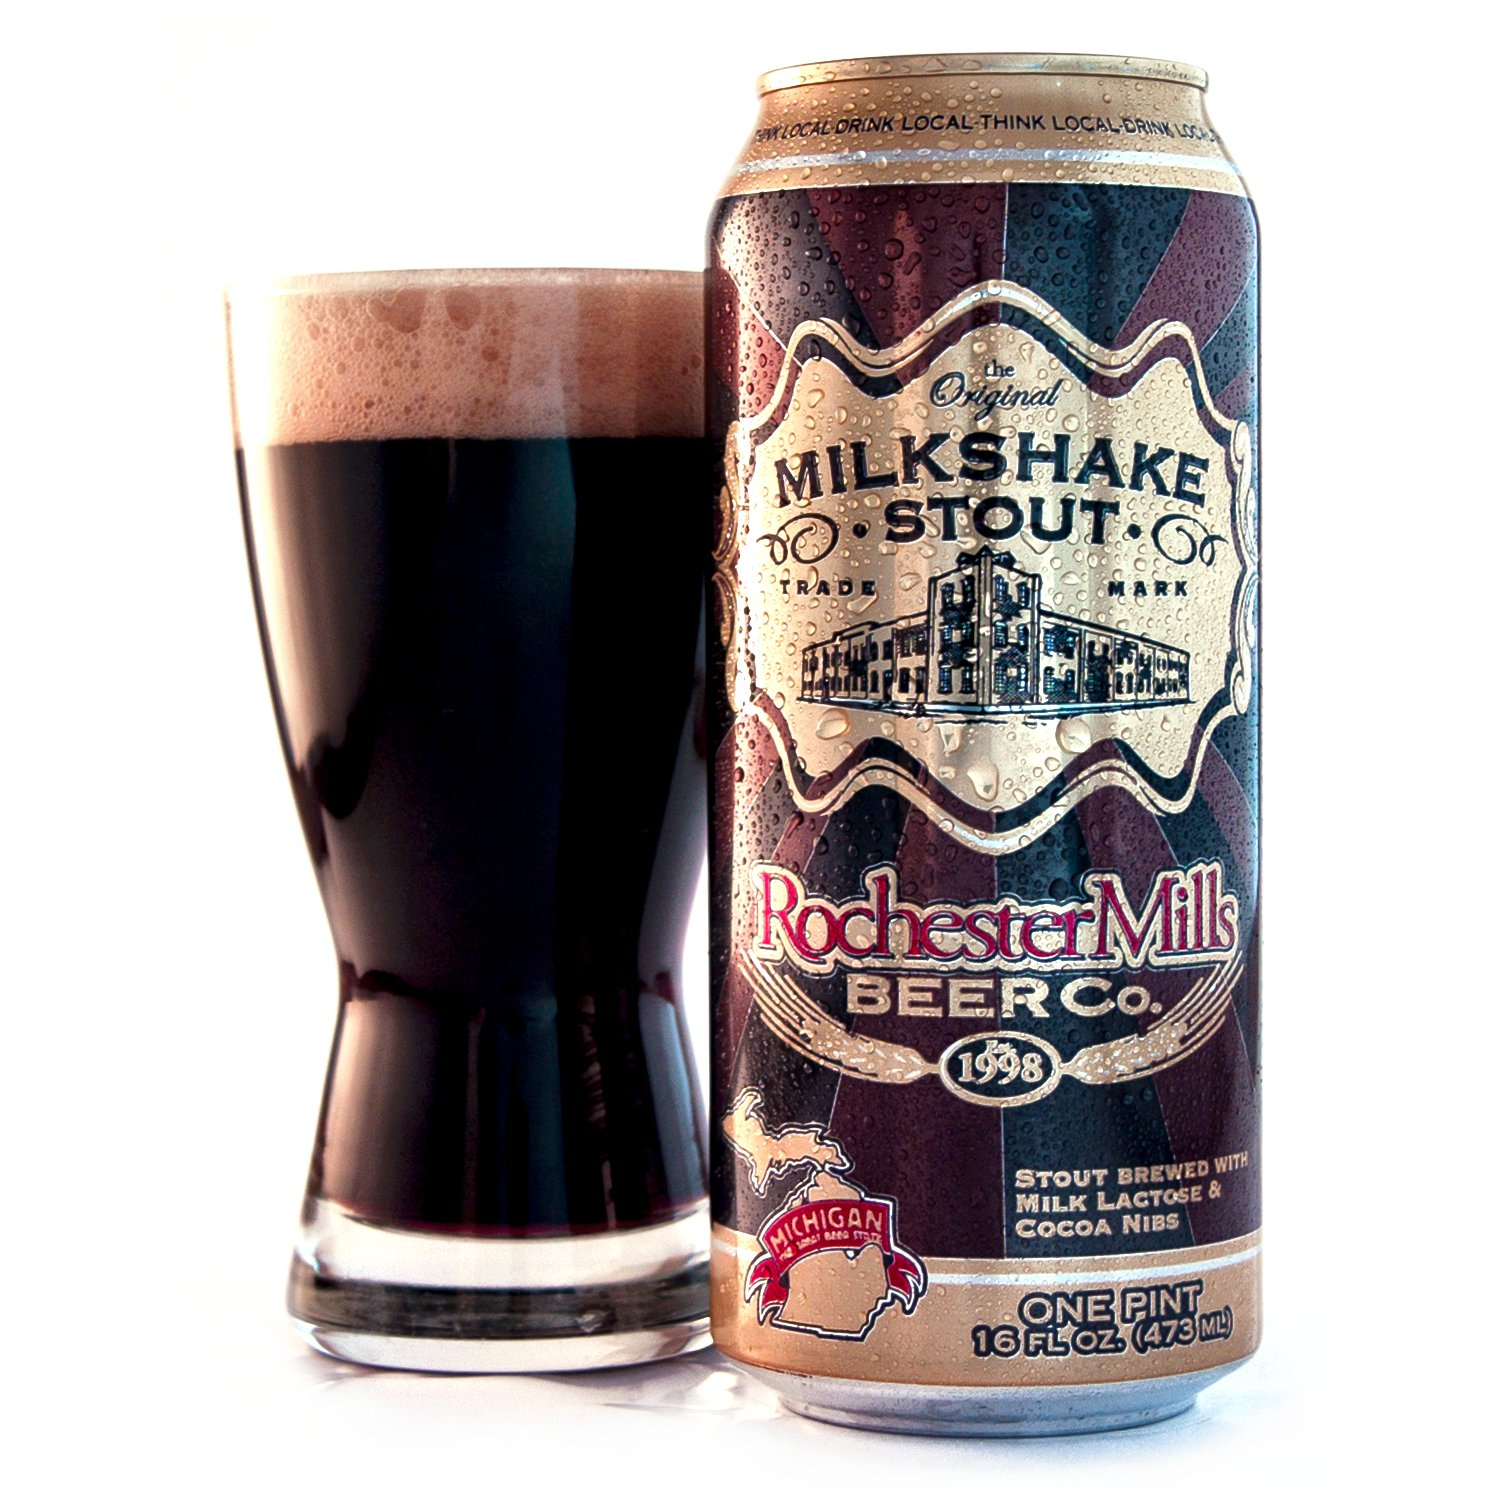 rochester mills 2,576 followers, 593 following, 610 posts - see instagram photos and videos from rochester mills beer (@rochestermillsbeer).